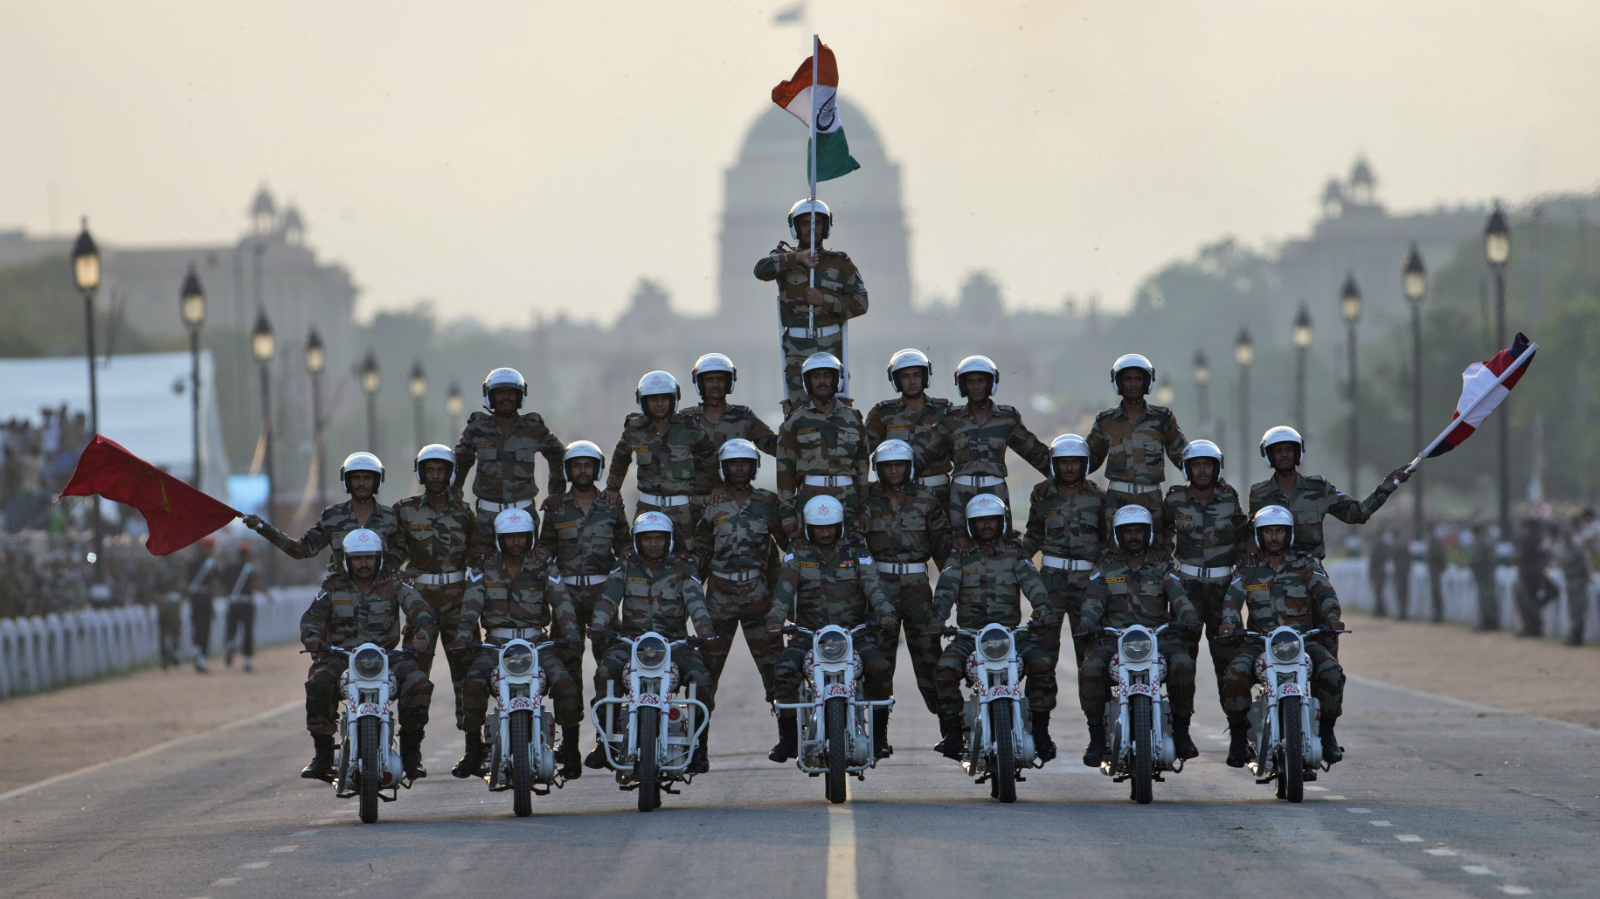 Indian army soldiers perform a daredevil motorcycle stunt during a parade to mark the 50th anniversary of the India-Pakistan war of 1965, in New Delhi, India, Sunday, Sept. 20, 2015. The parade concluded celebrations to honor soldiers who fought the war in 1965.